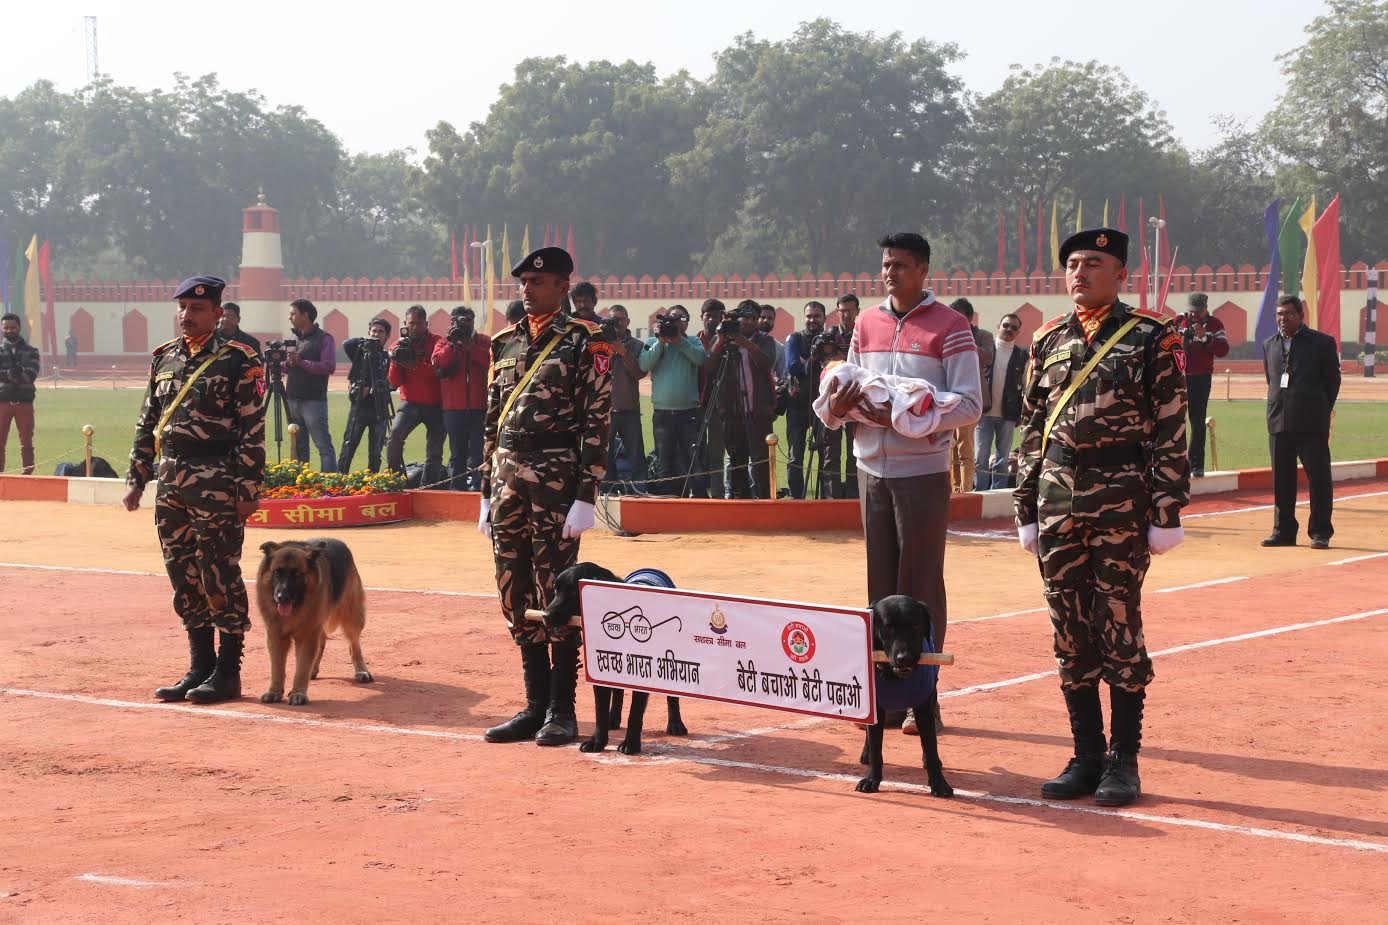 ssb-jawans-performing-various-acts-ssb-foundation-day-6